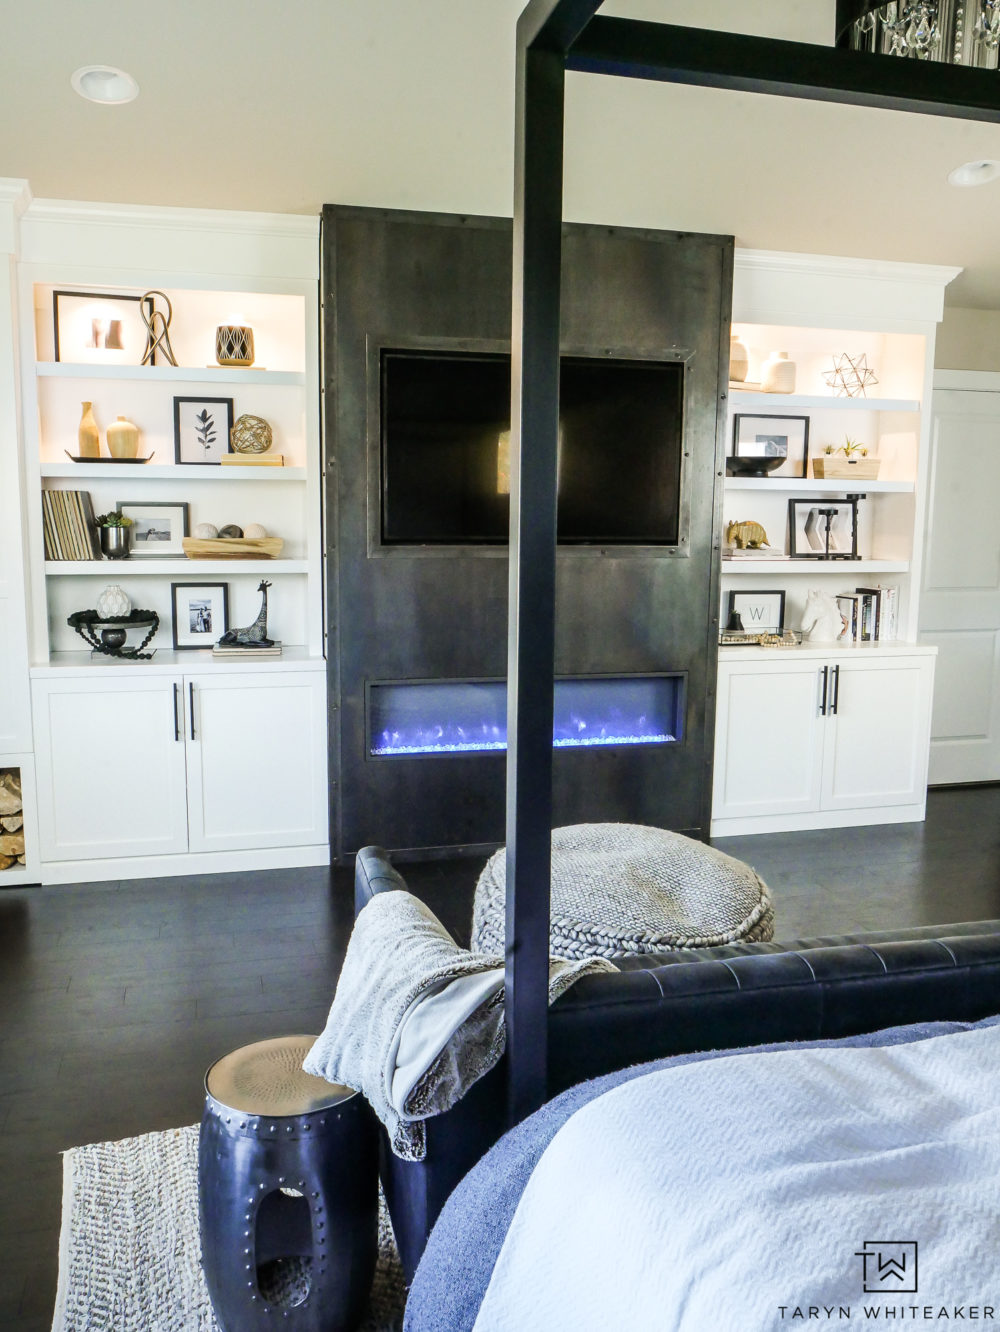 Turn your master bedroom into a luxury retreat by adding a fireplace and custom built ins! Great for storage and keeping your bedroom cozy.